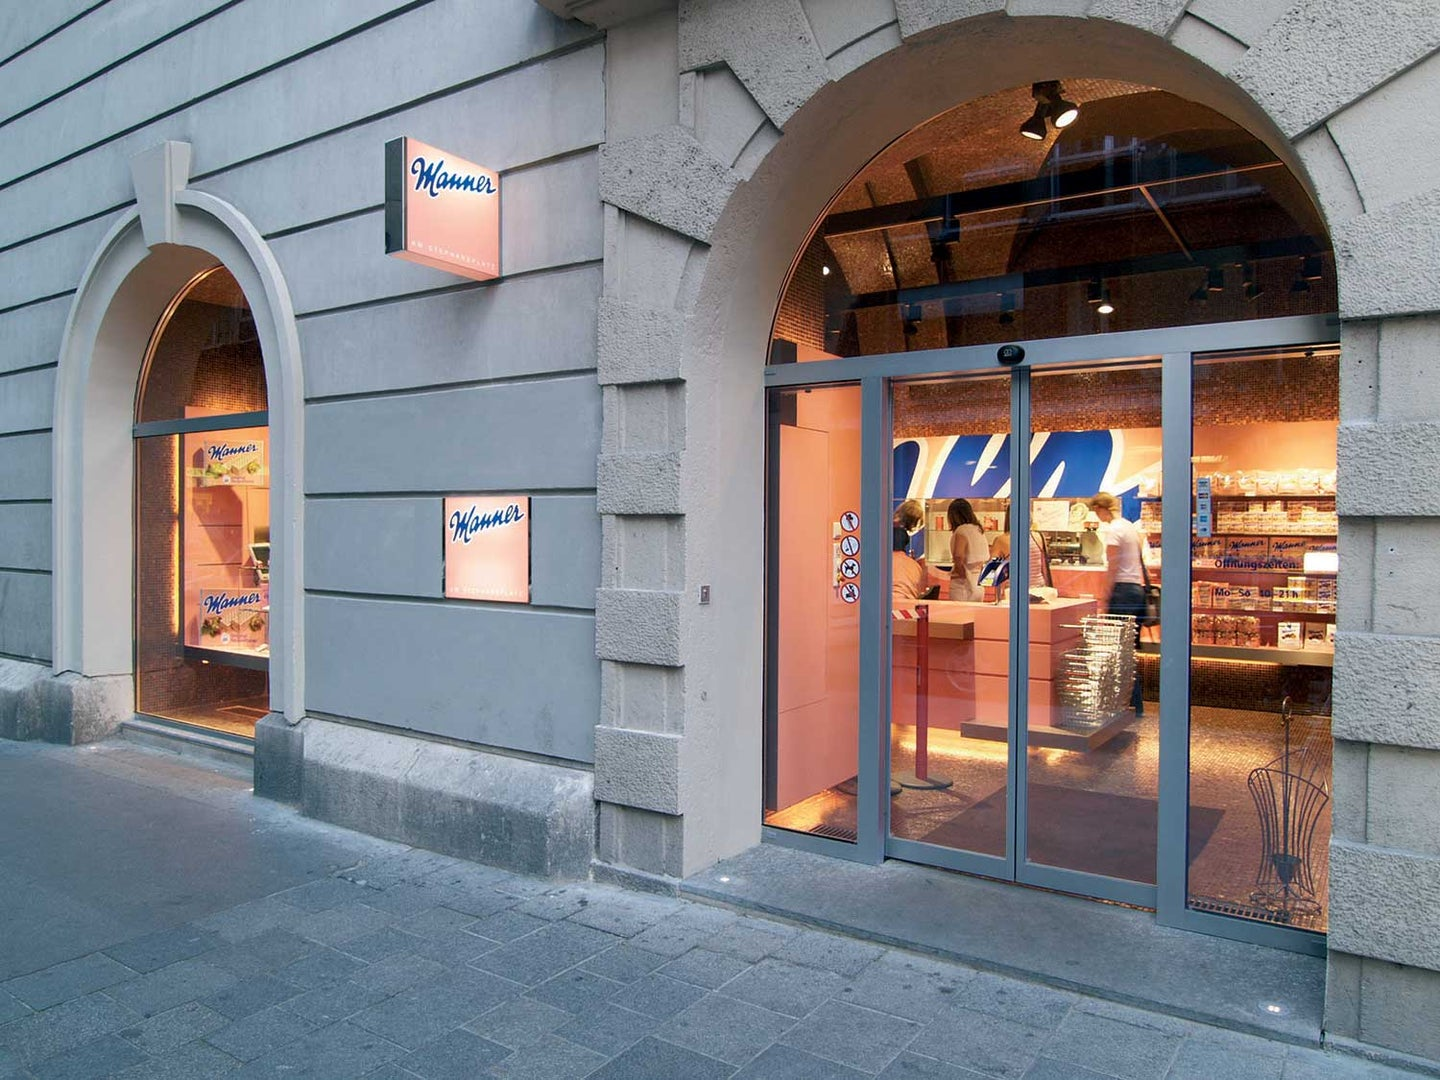 The entryway to Vienna's Manner boutique.